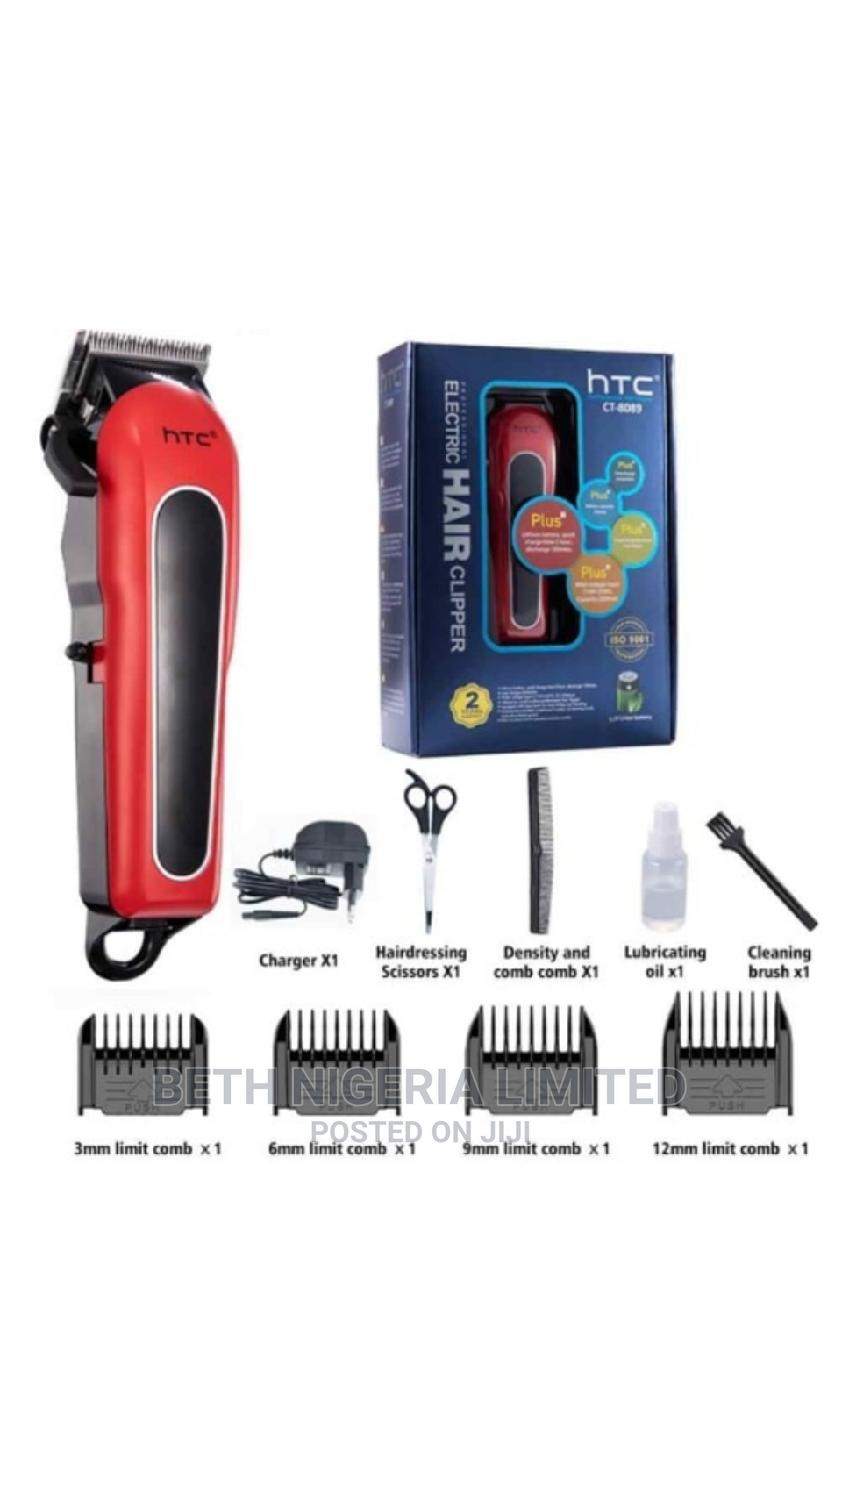 Htc Professional Rechargeable Cordless Clipper